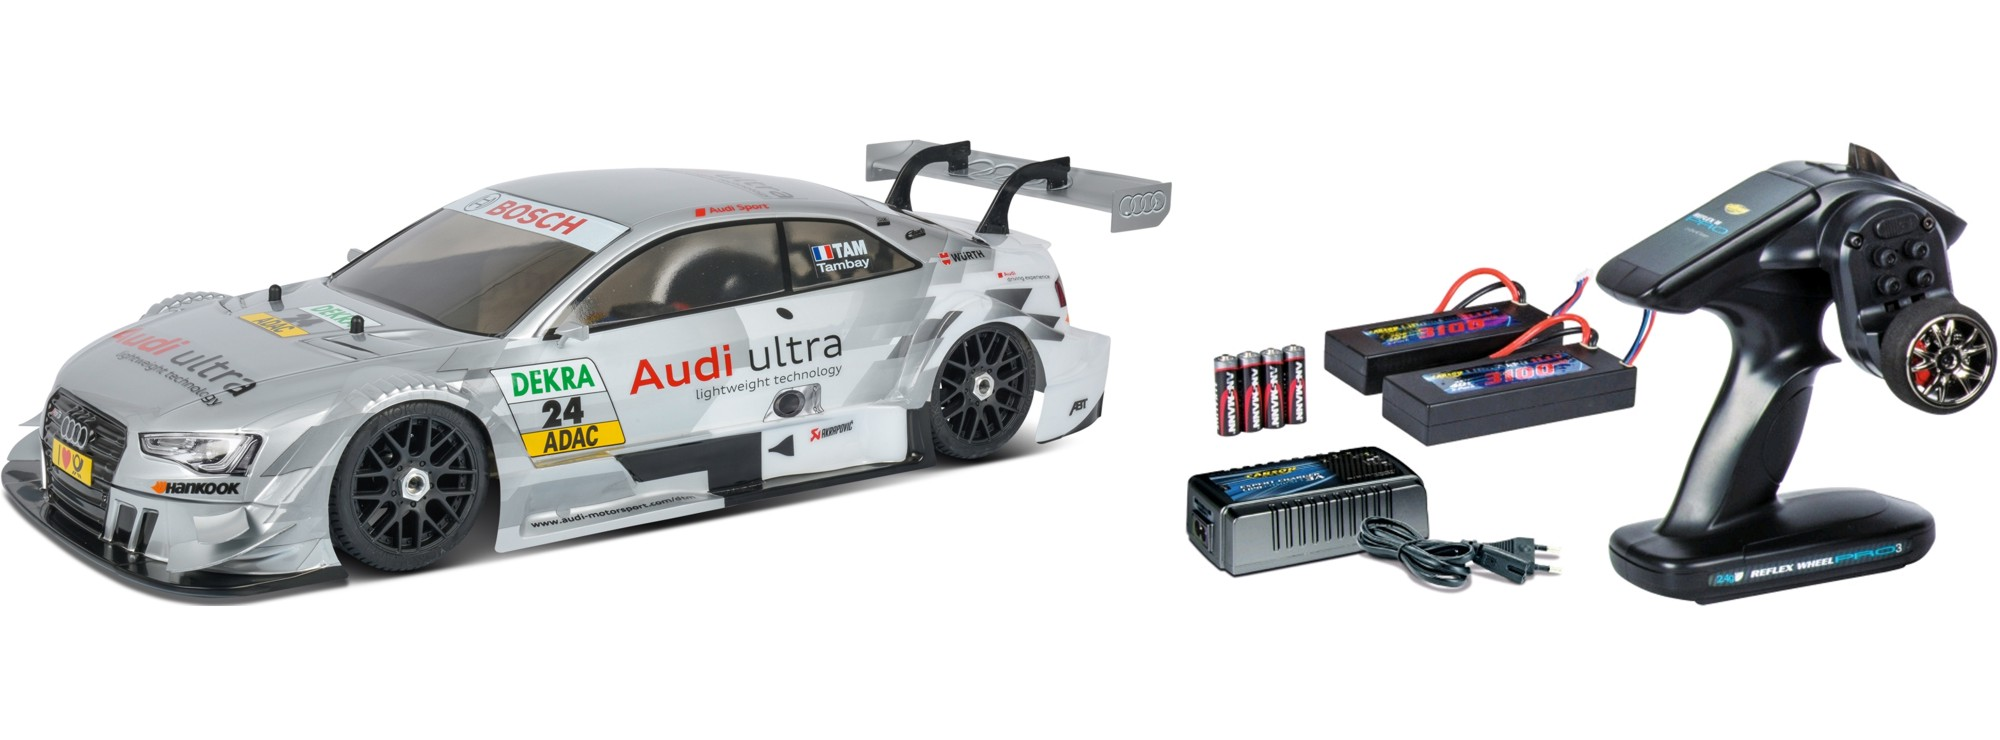 CARSON 1111 Audi RS1111 1111.1111GHz Brushless | RC Auto RTR 11:1111 | audi rc cars